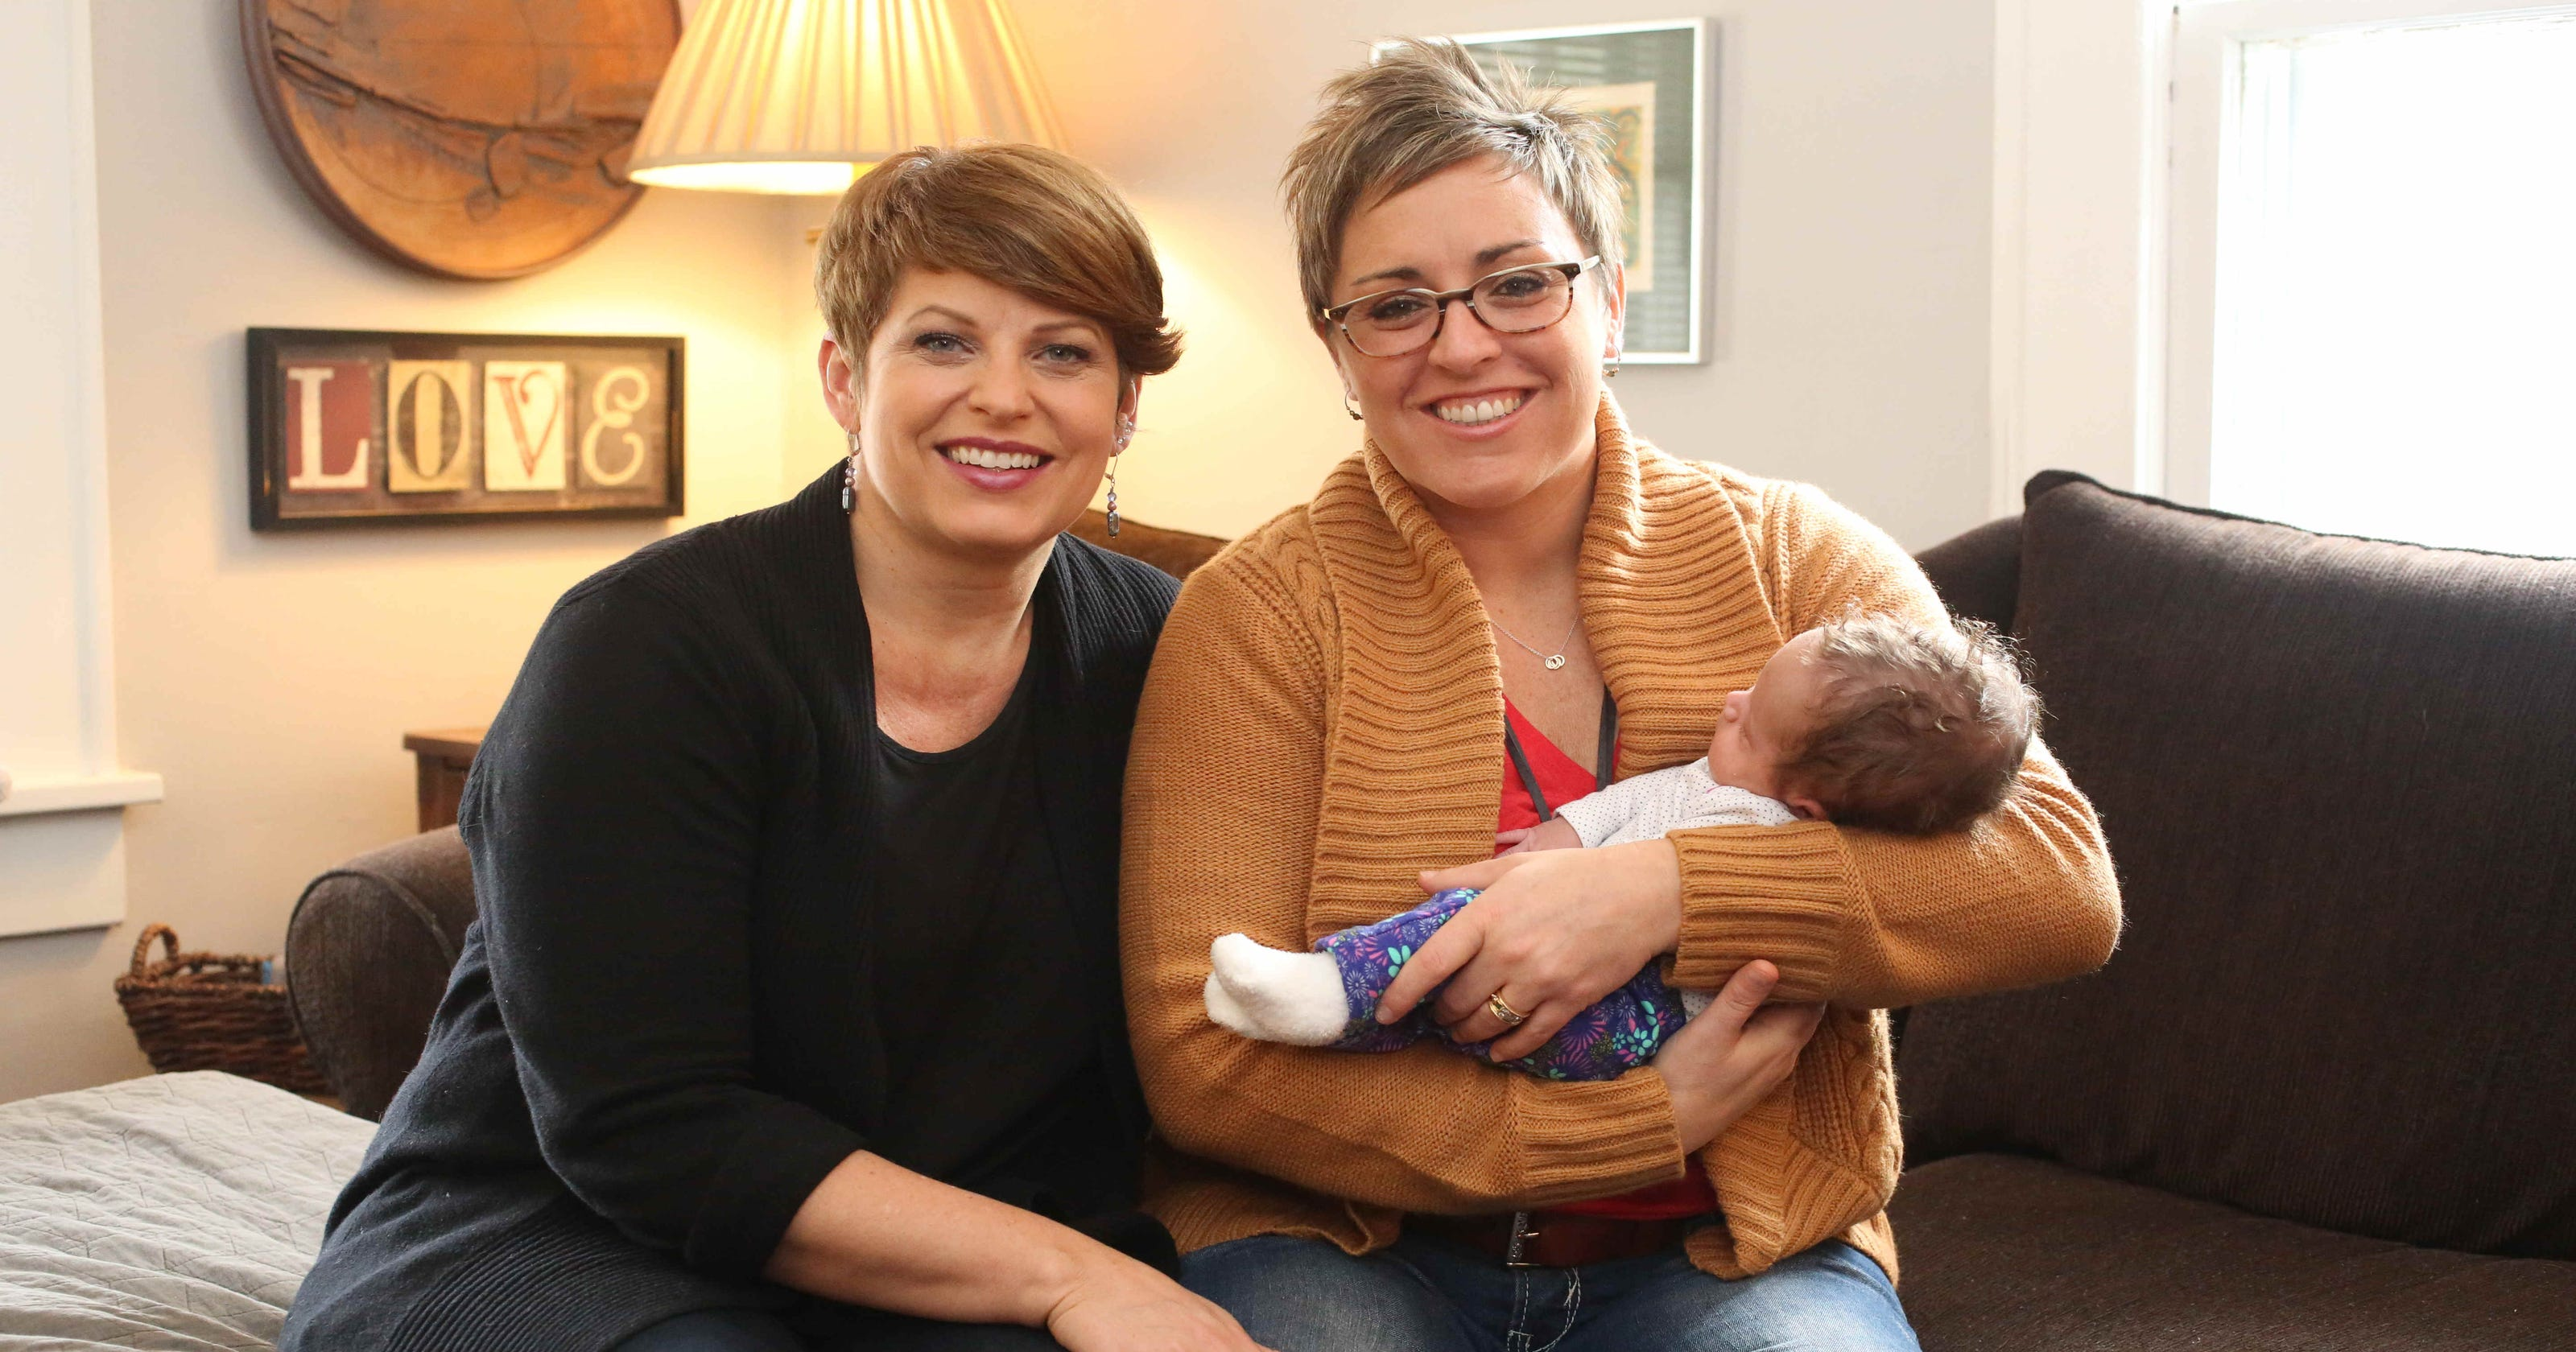 State appeals ruling on parental rights for same-sex couples